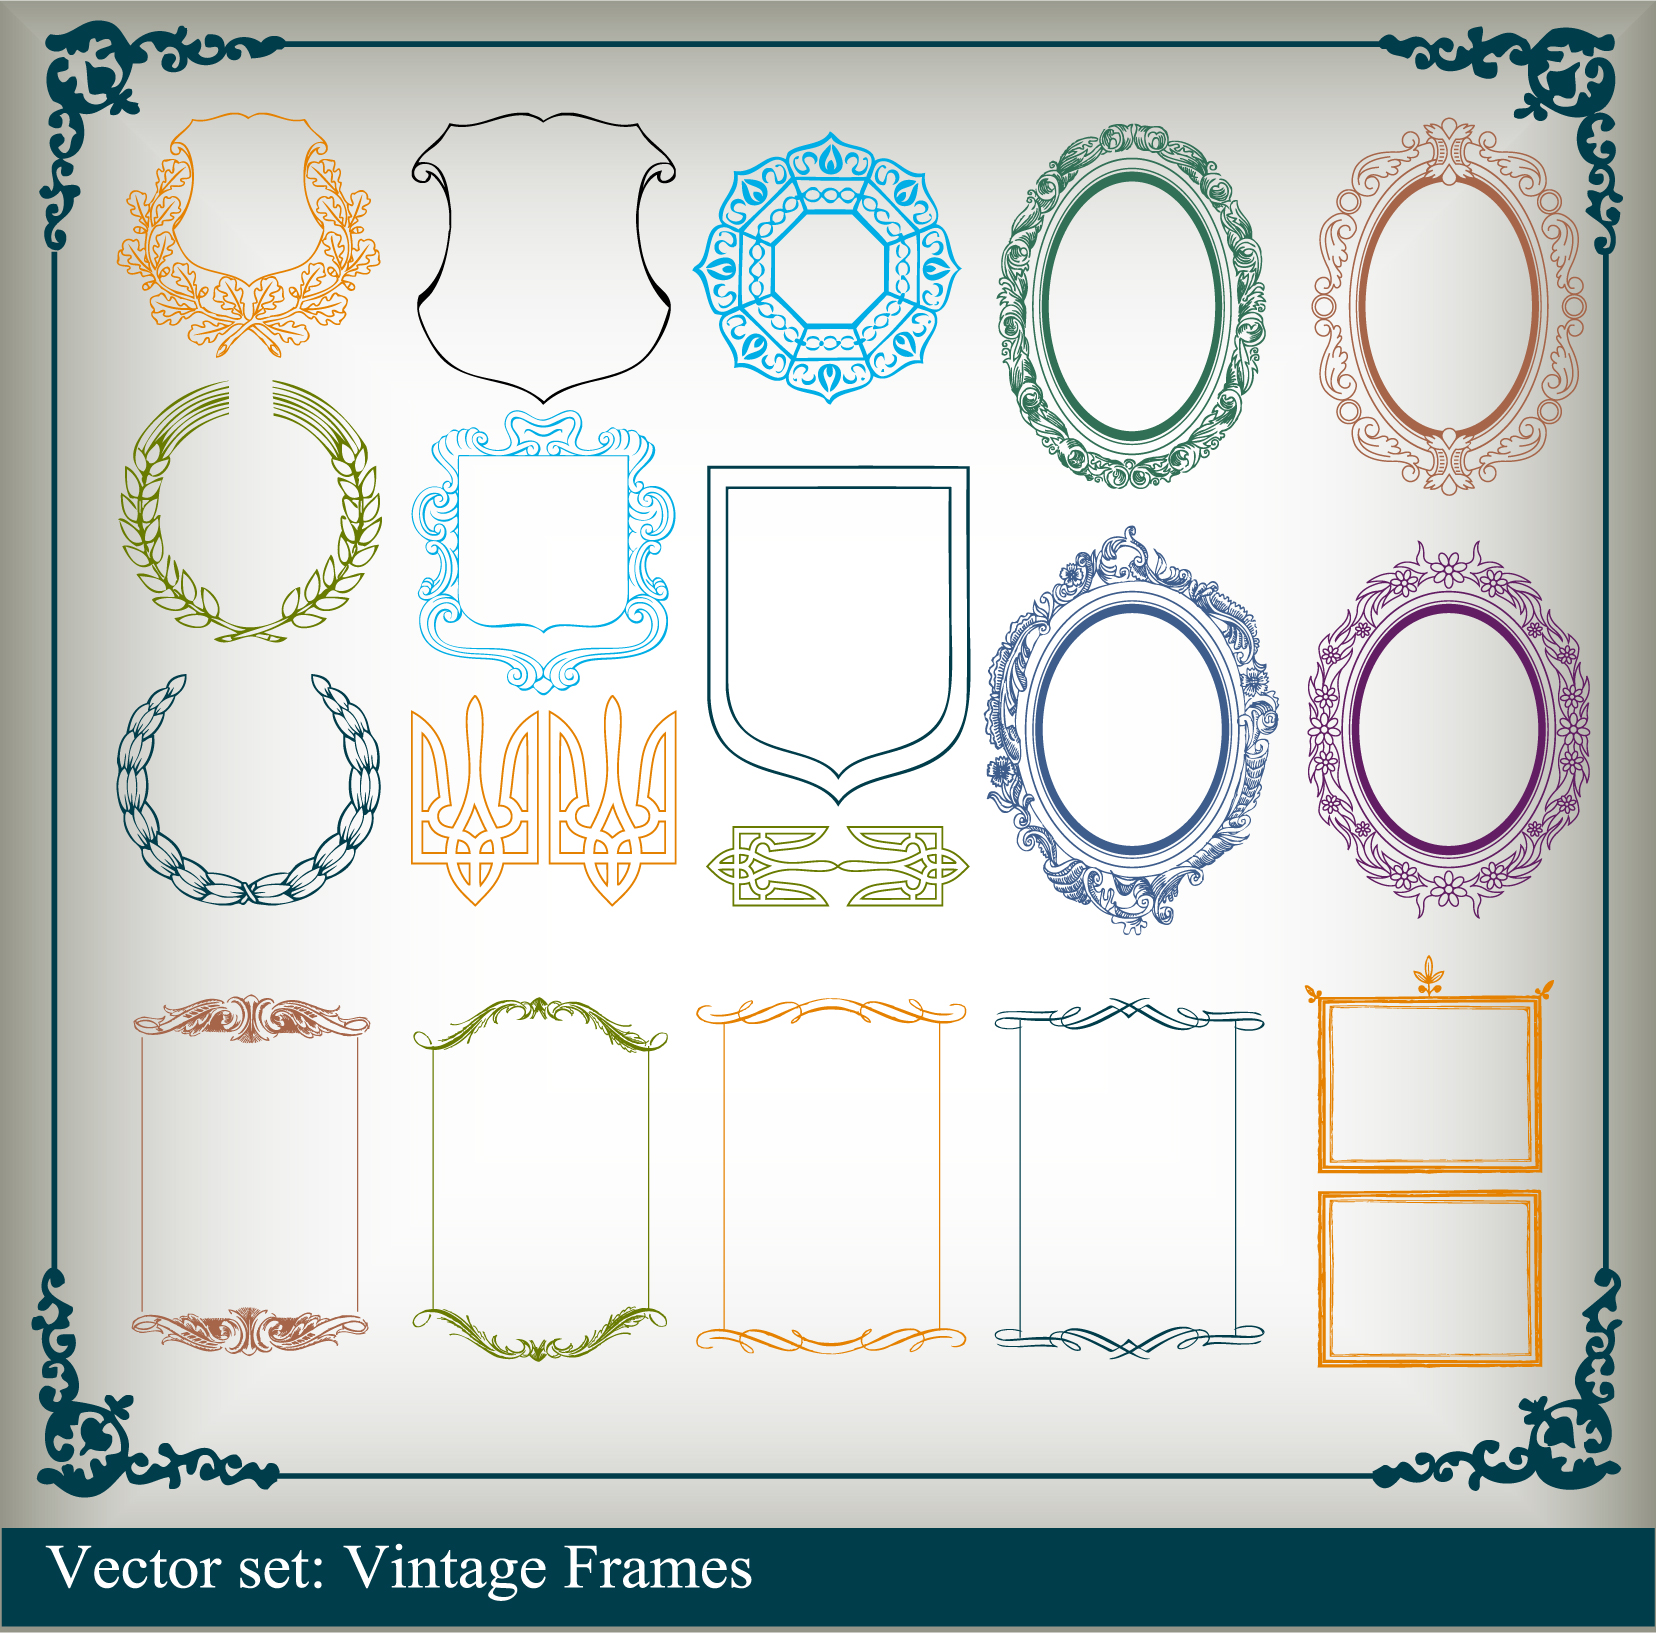 Variety of graphical borders clip art Free Vector / 4Vector.